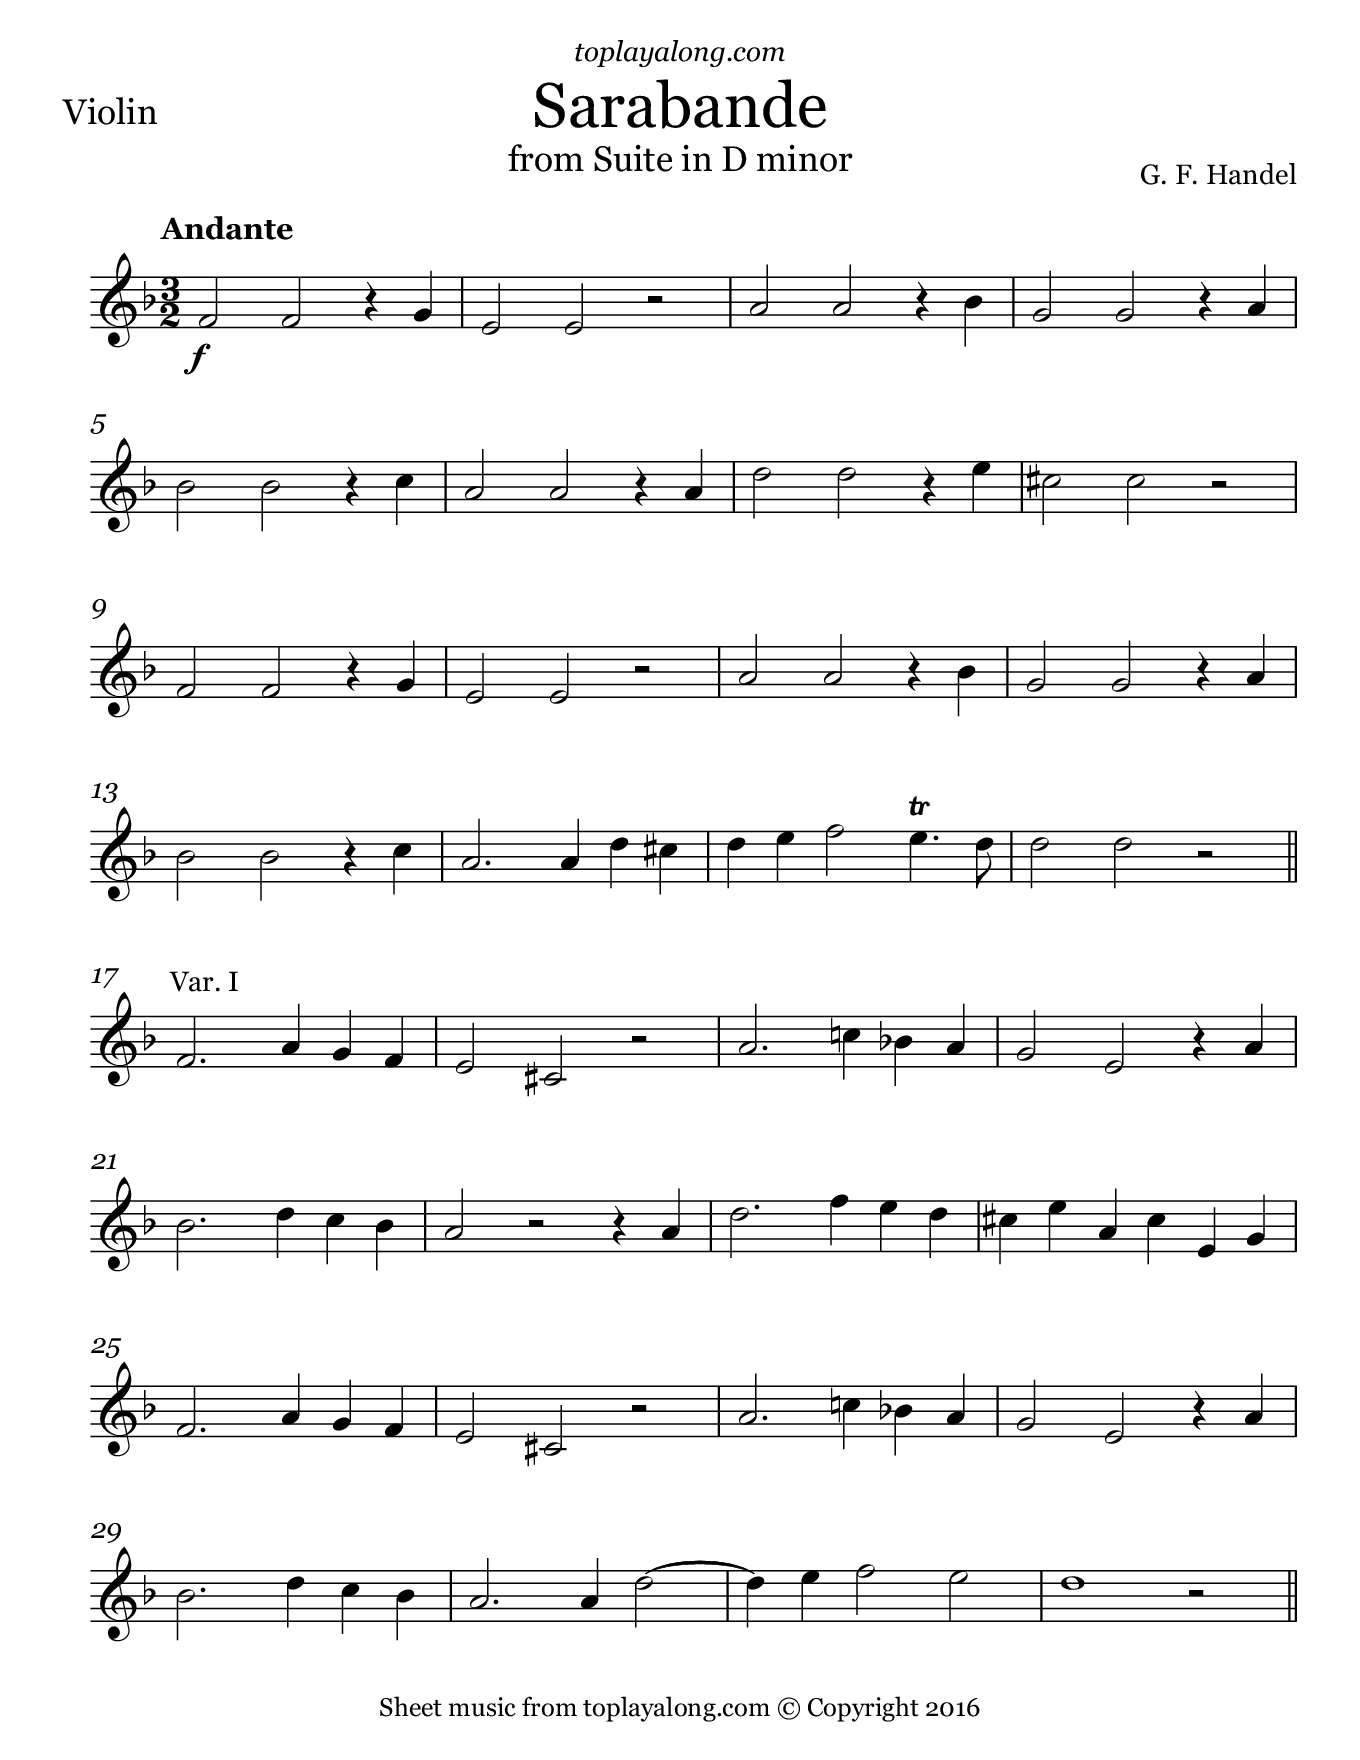 Sarabande from Suite in D minor by Handel. Sheet music for Violin, page 1.